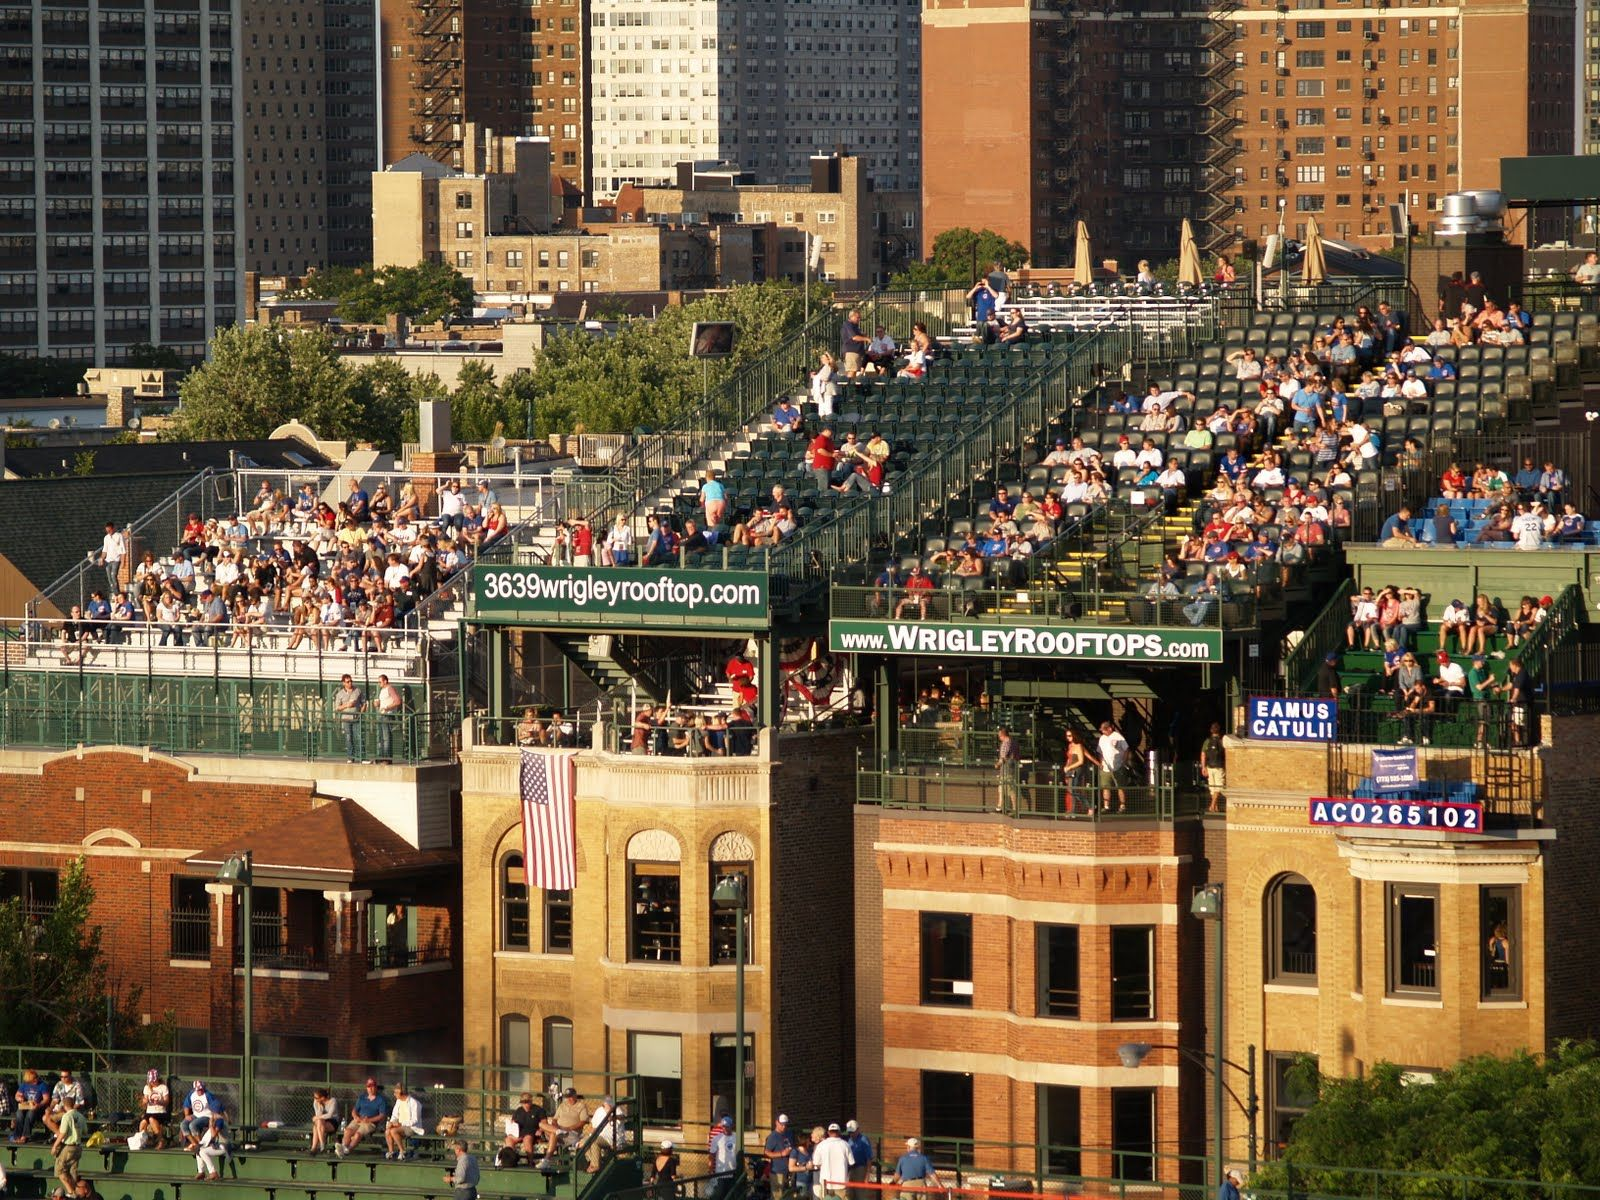 Wrigley Field Rooftop Seating  Private Residences Only In - Chicago map showing wrigley field